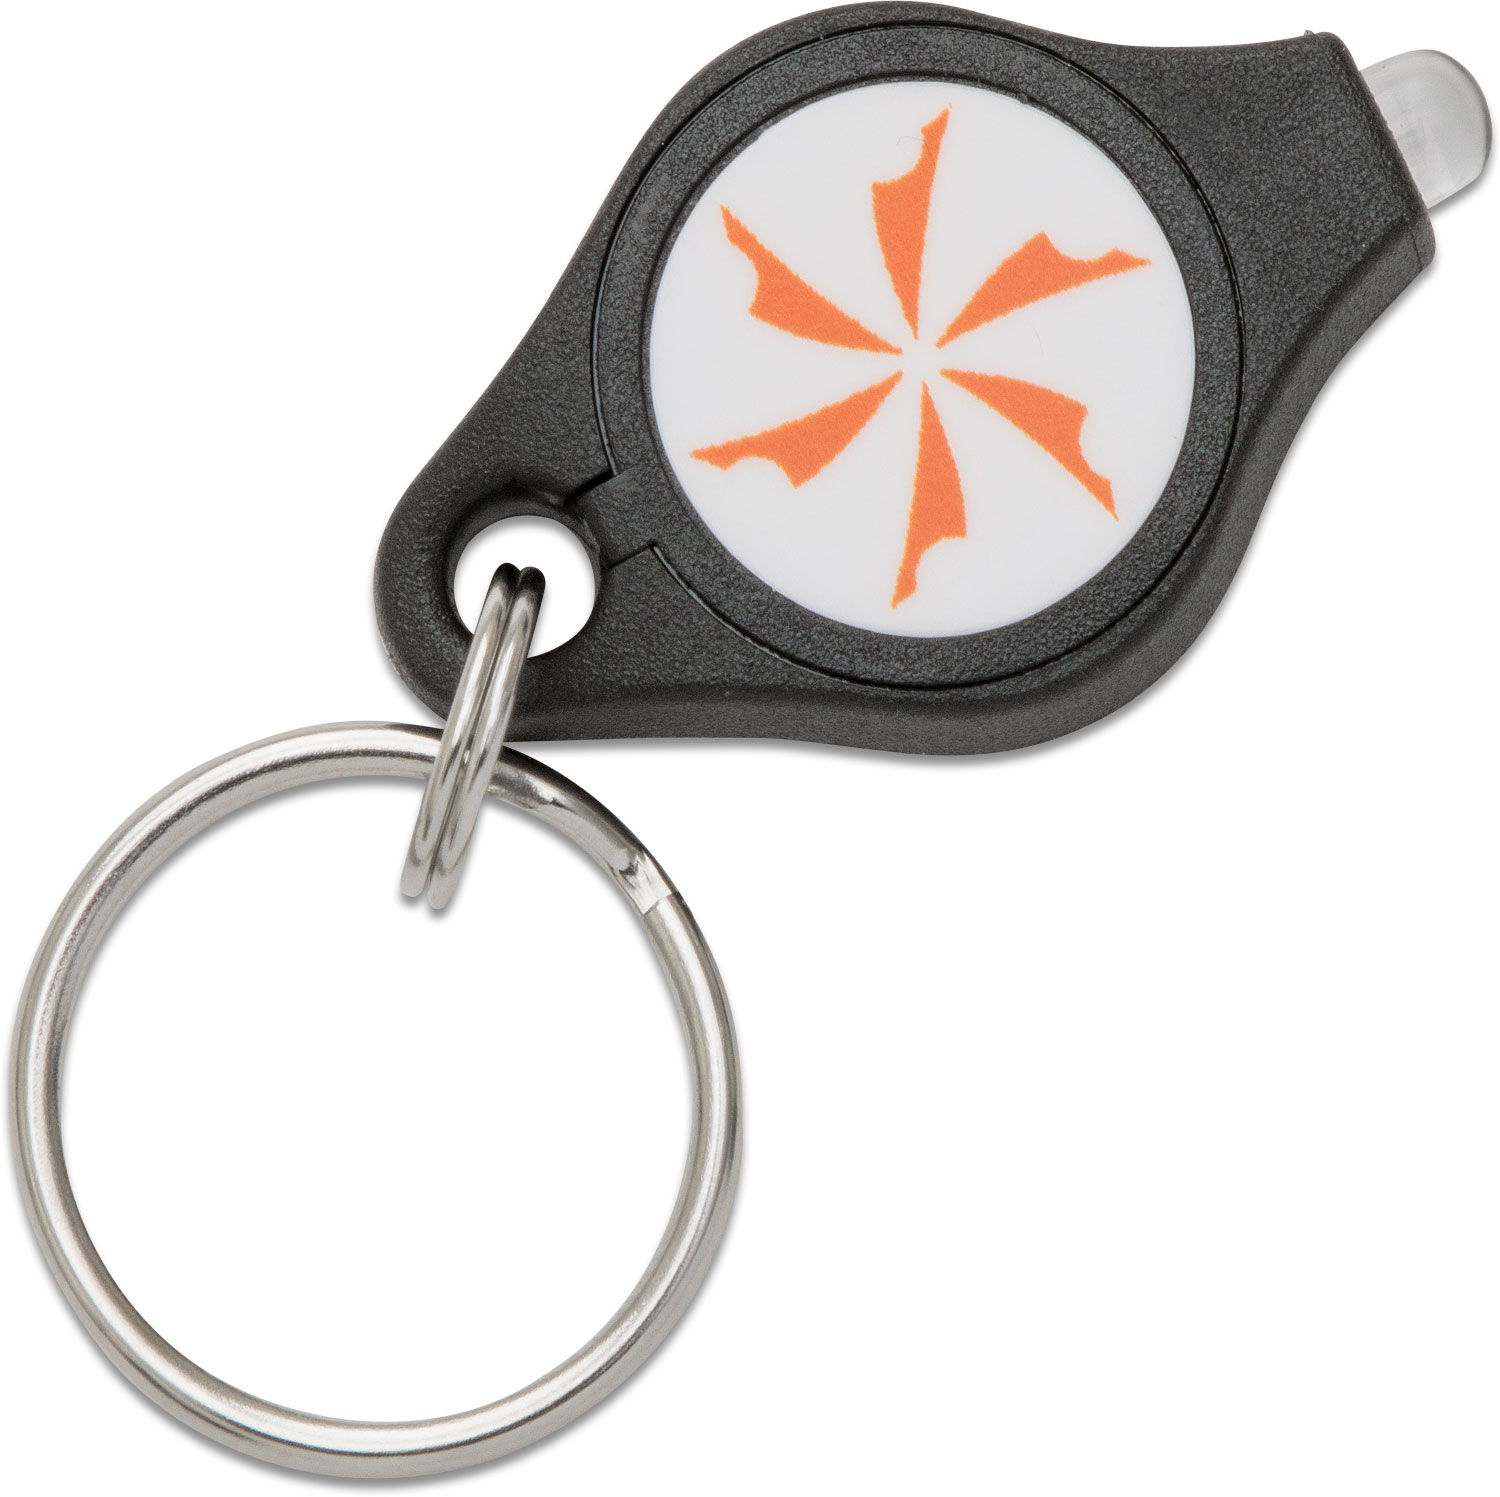 Photon Micro-Light I Keychain Flashlight, Orange LED, KnifeCenter Logo